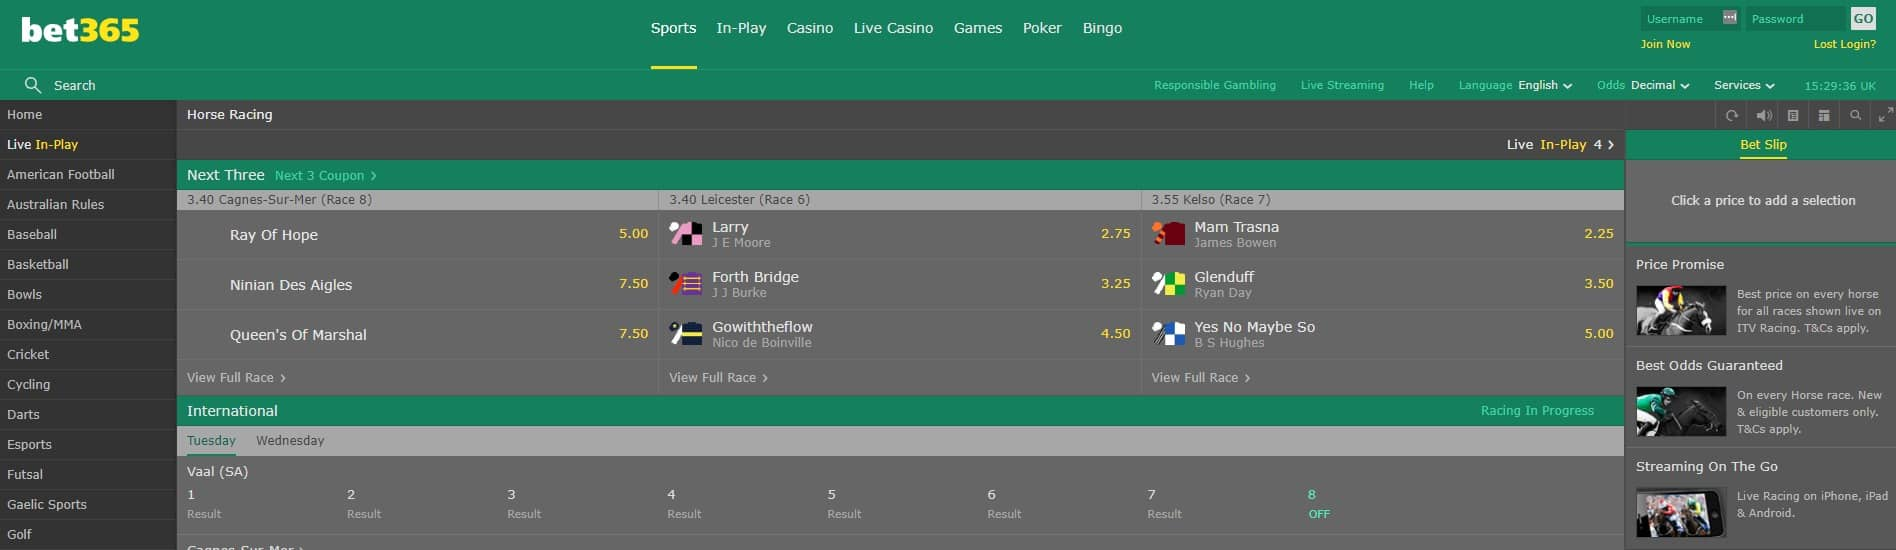 bet365 Horse Racing Review - £100 Bonus with Great Features